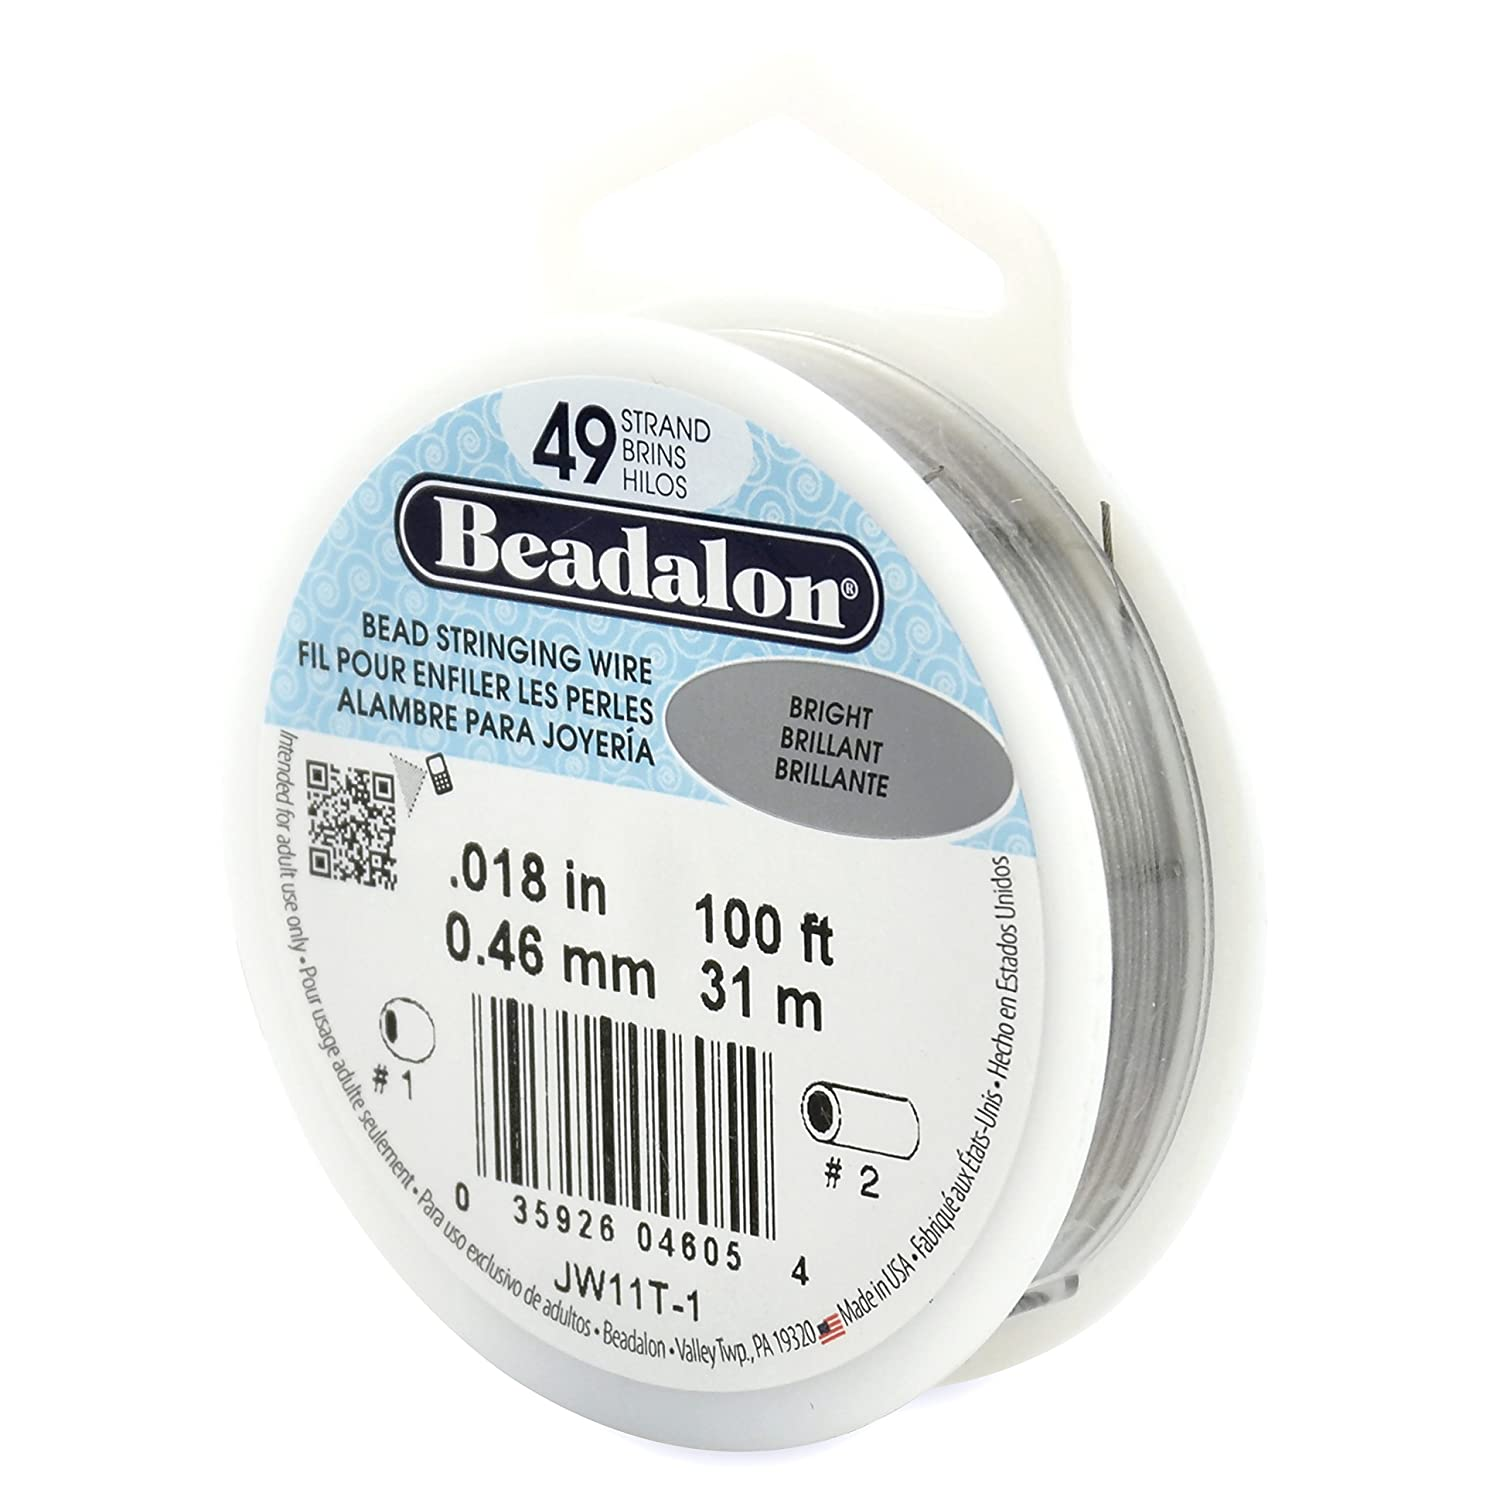 Beadalon 49-Strand Bead Stringing Wire, 0.018-Inch, Bright, 100-Feet JW11T-1